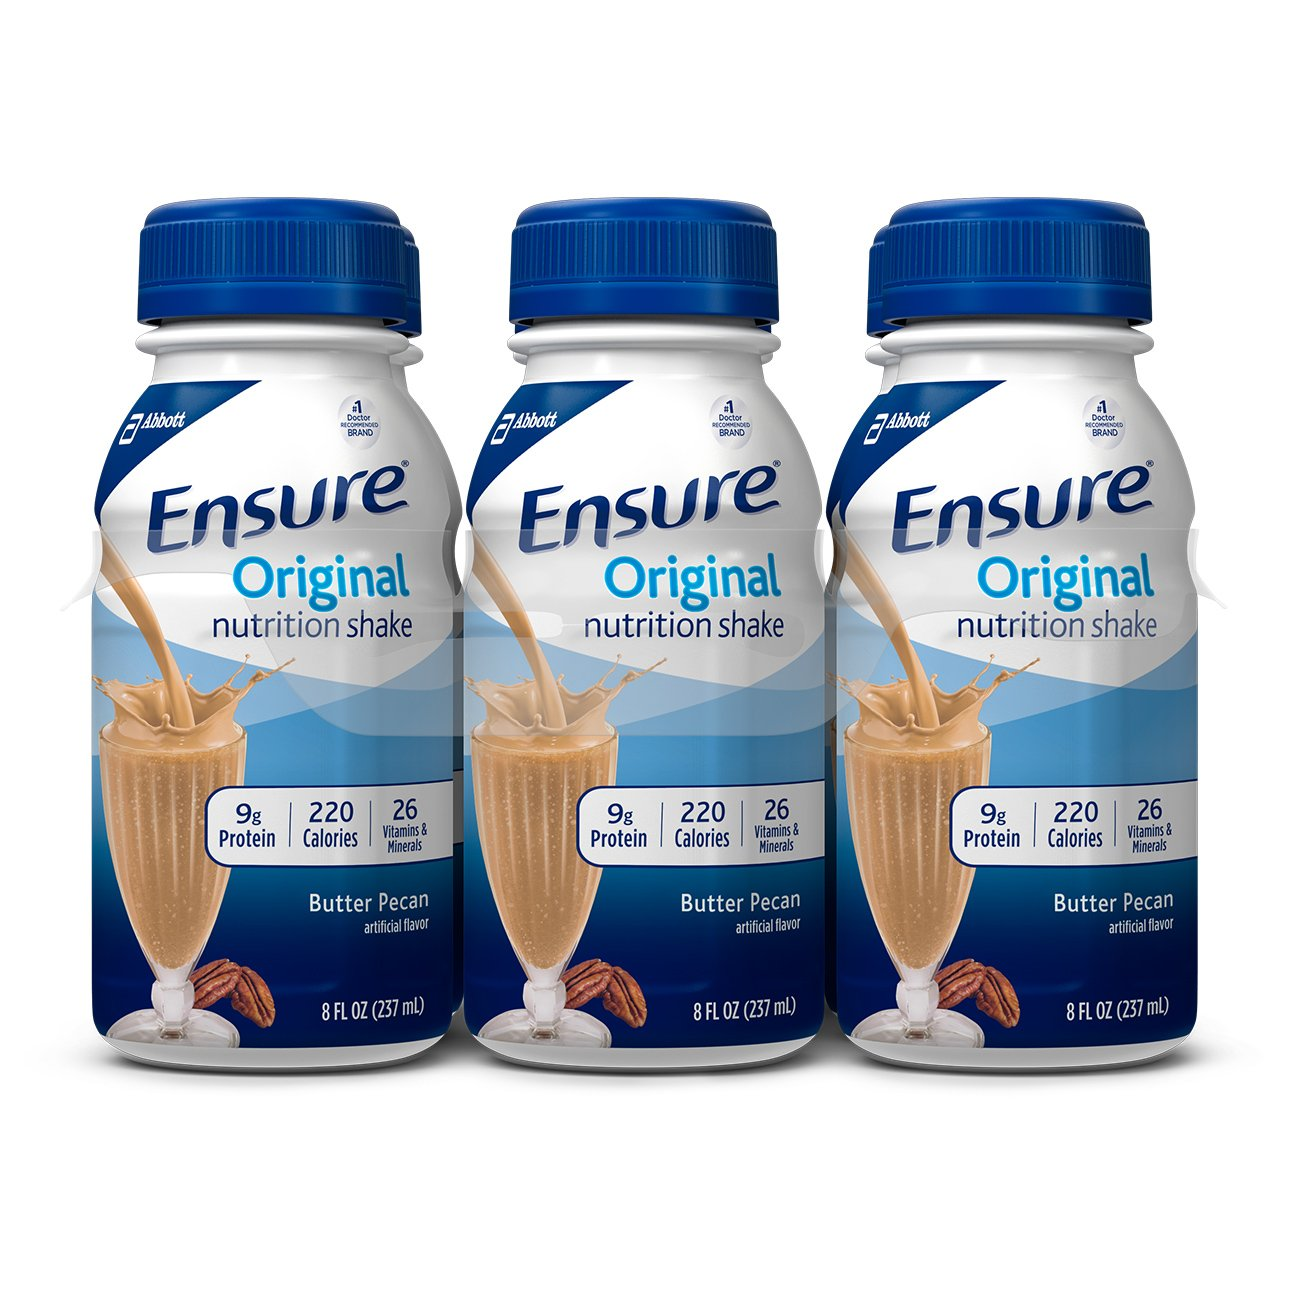 Ensure Original Nutrition Shake, Butter Pecan, 8 ounces, 24 count